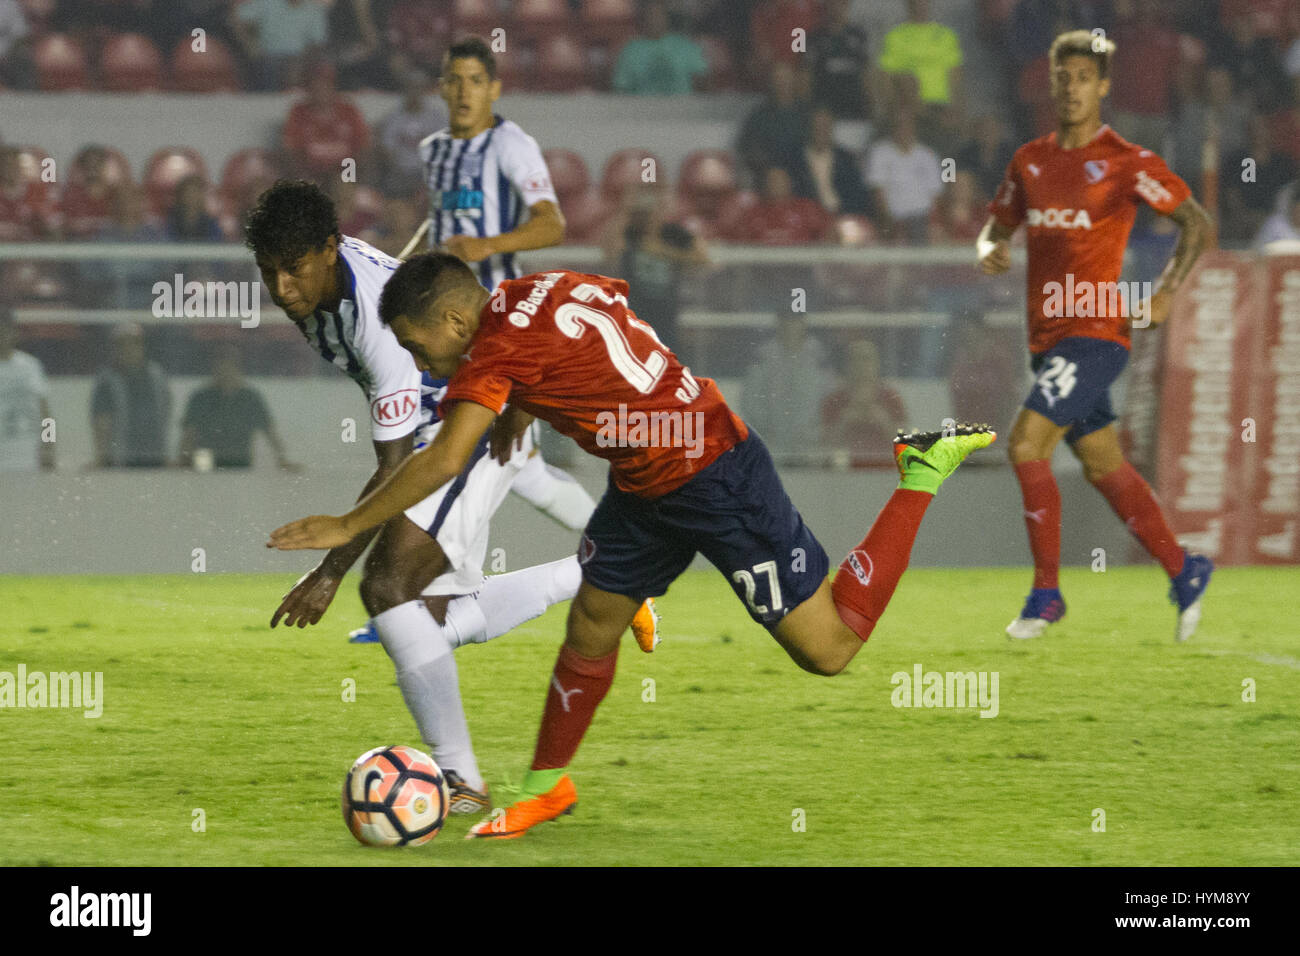 BUENOS AIRES, 04.04.2017:  Ezequiel Barco, forward of Independiente during match between Independiente (ARG) and - Stock Image